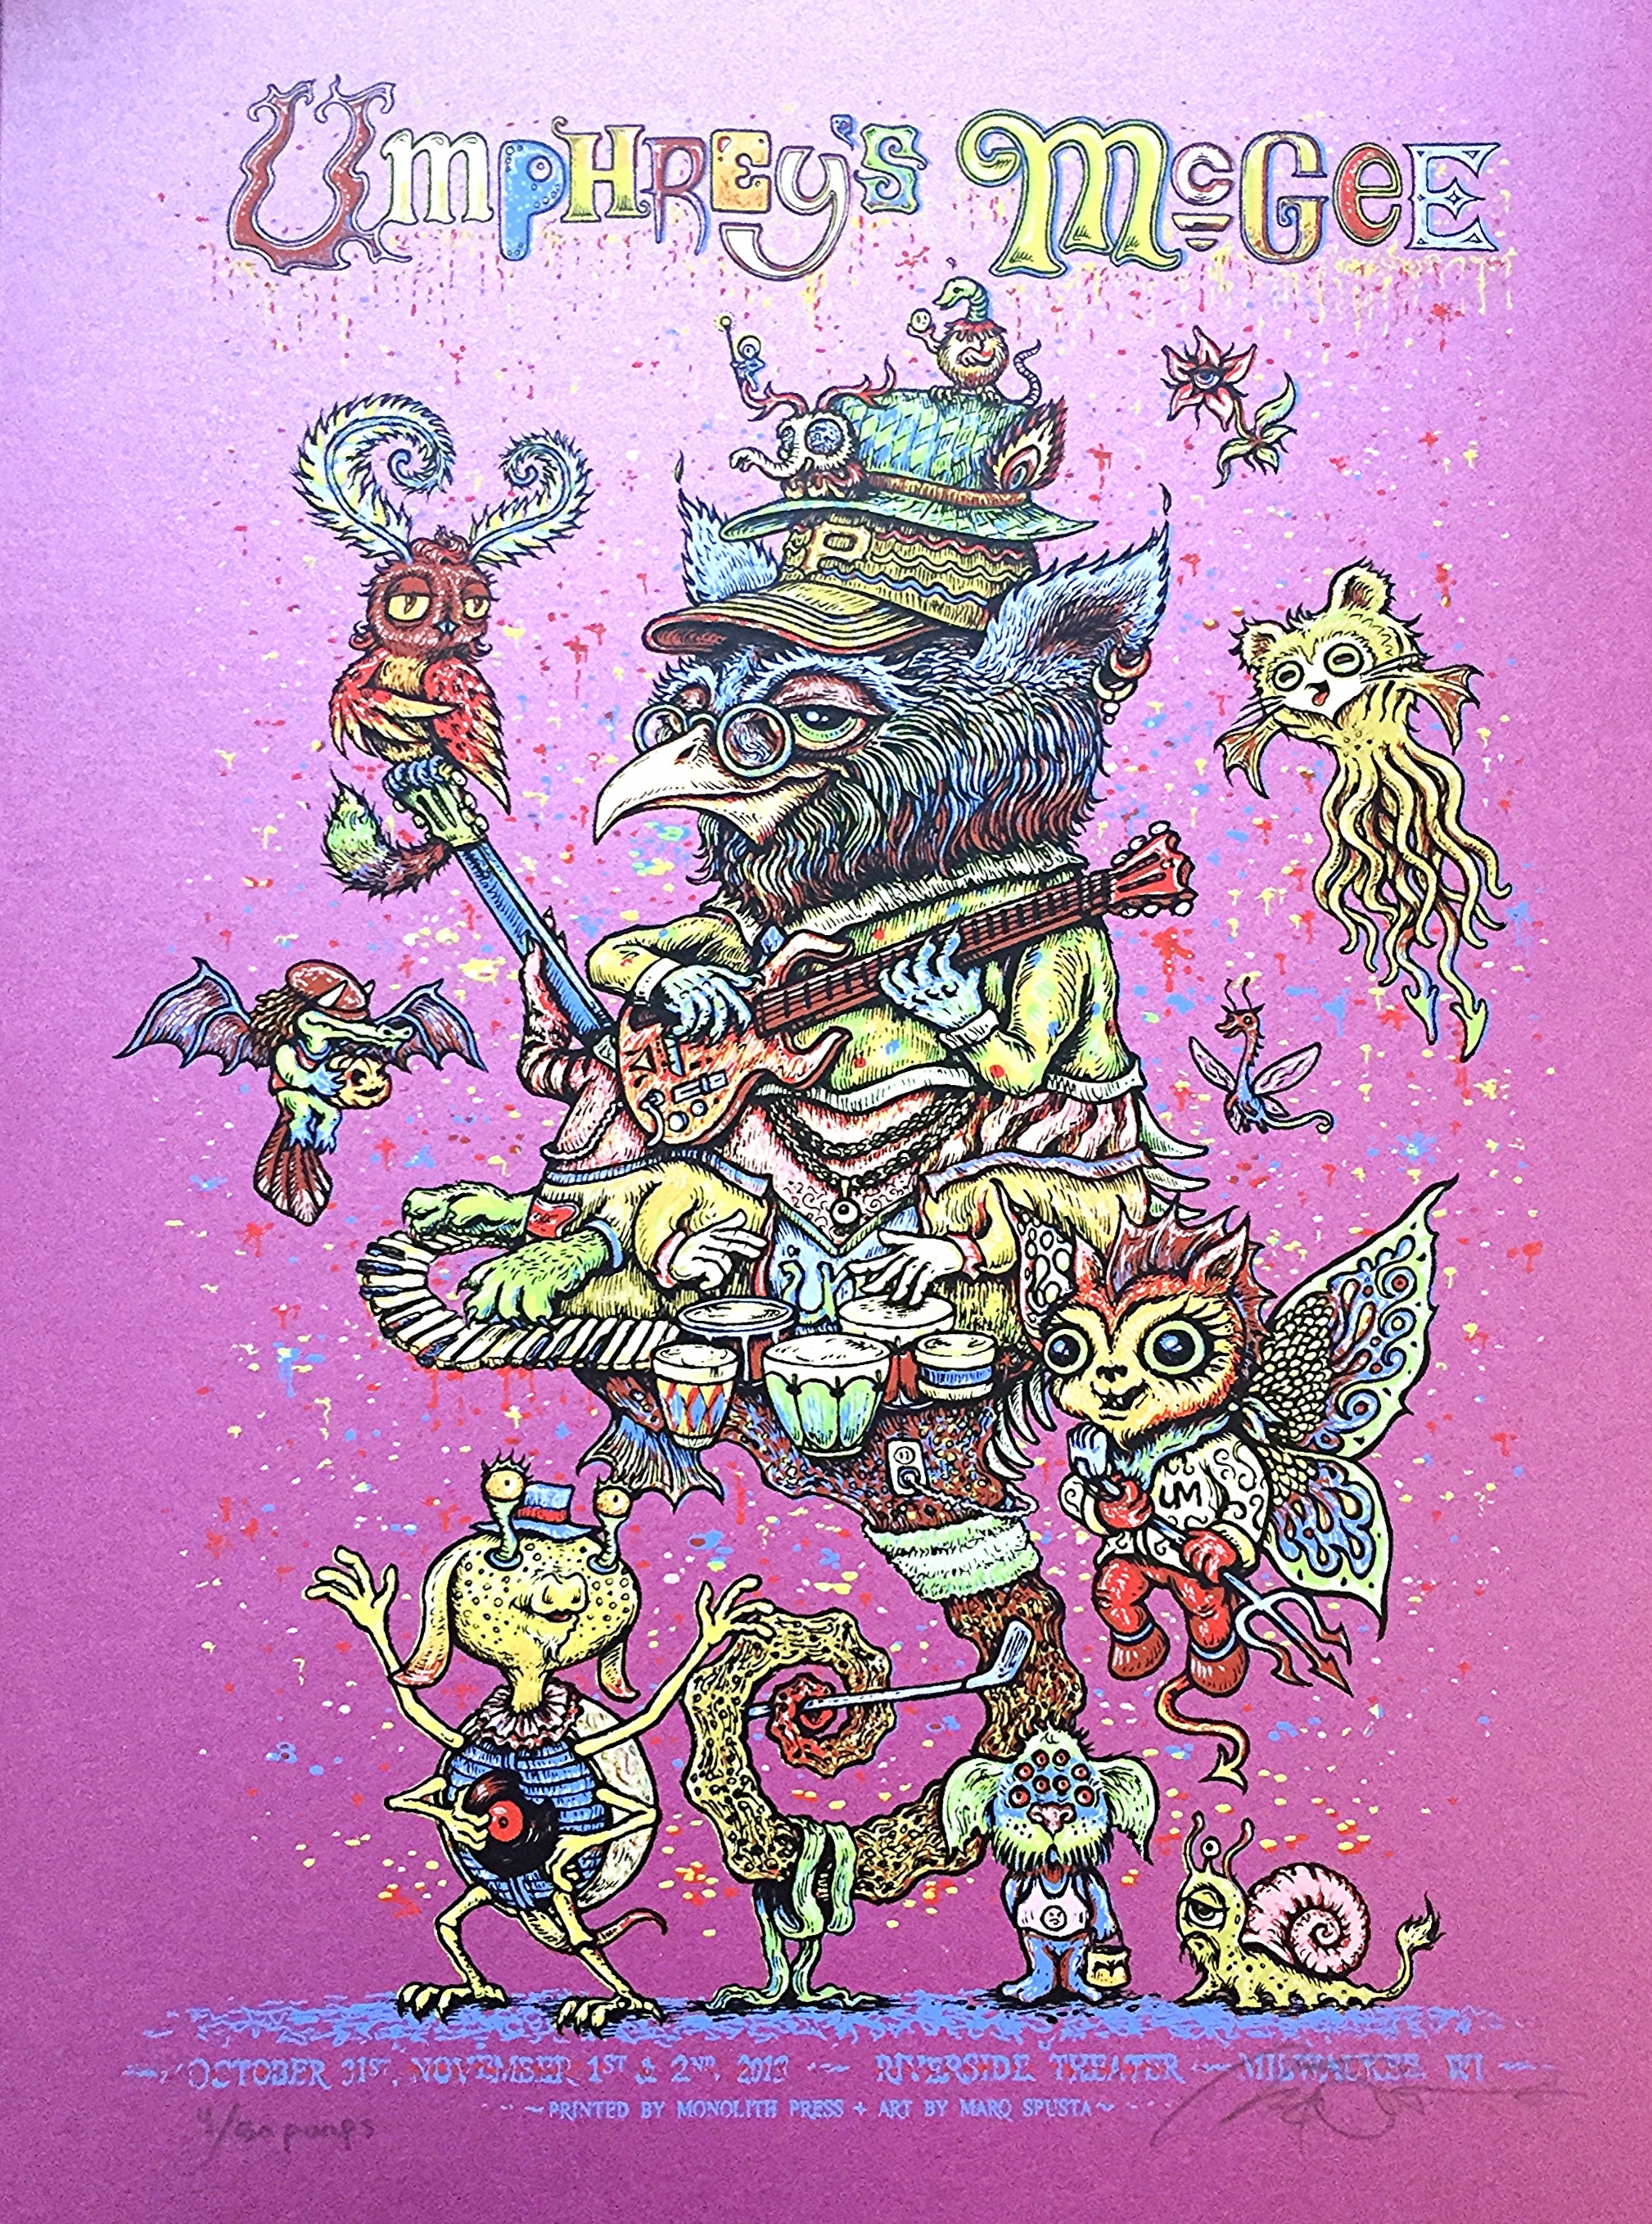 Purple Poster with Minis $100